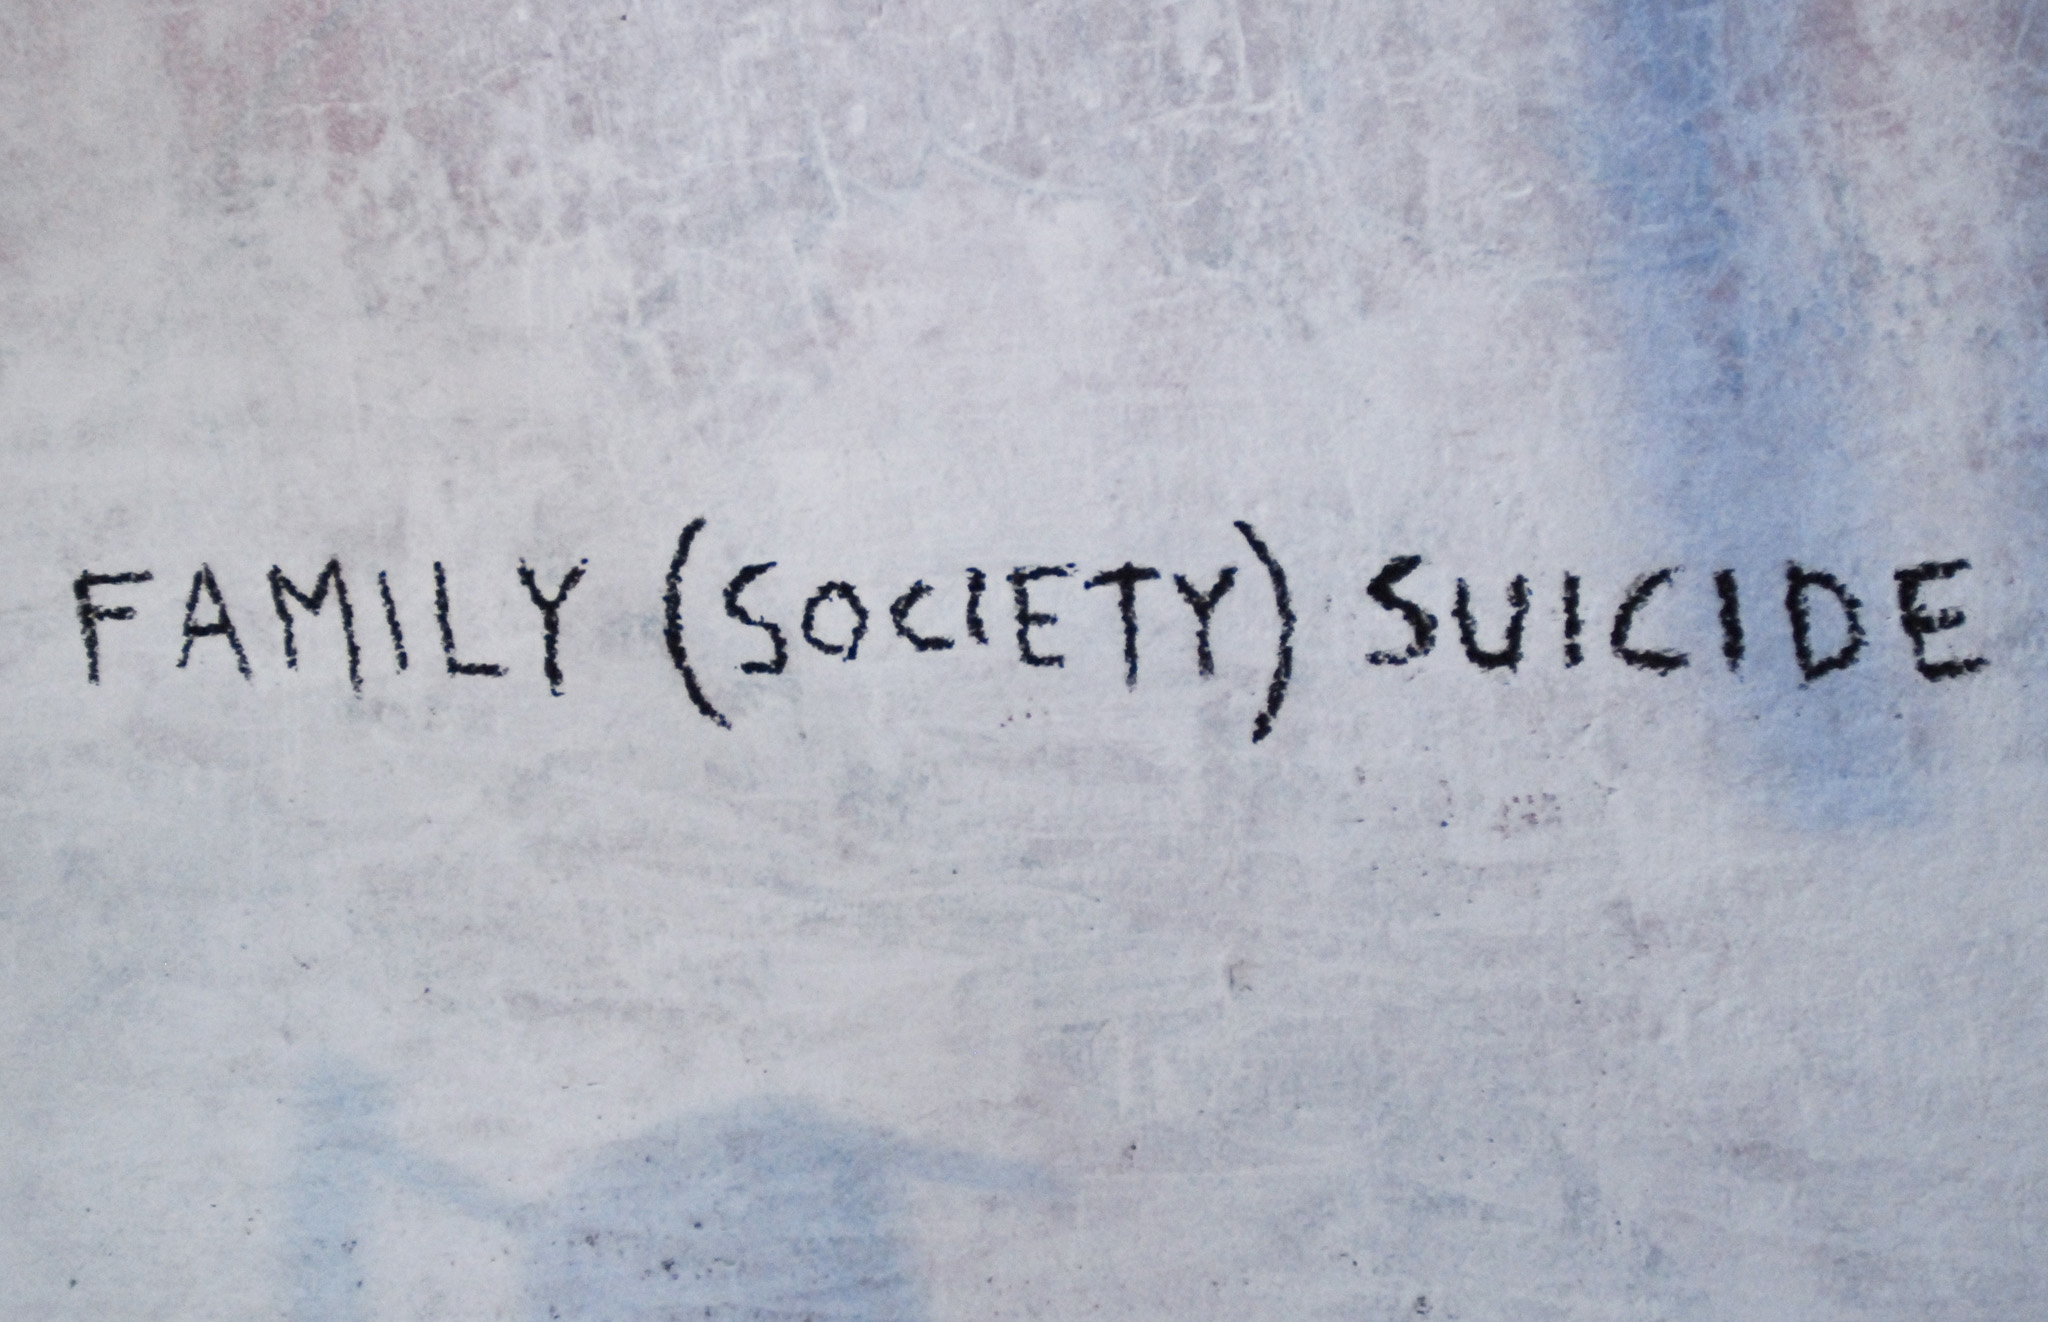 Family (society) suicide